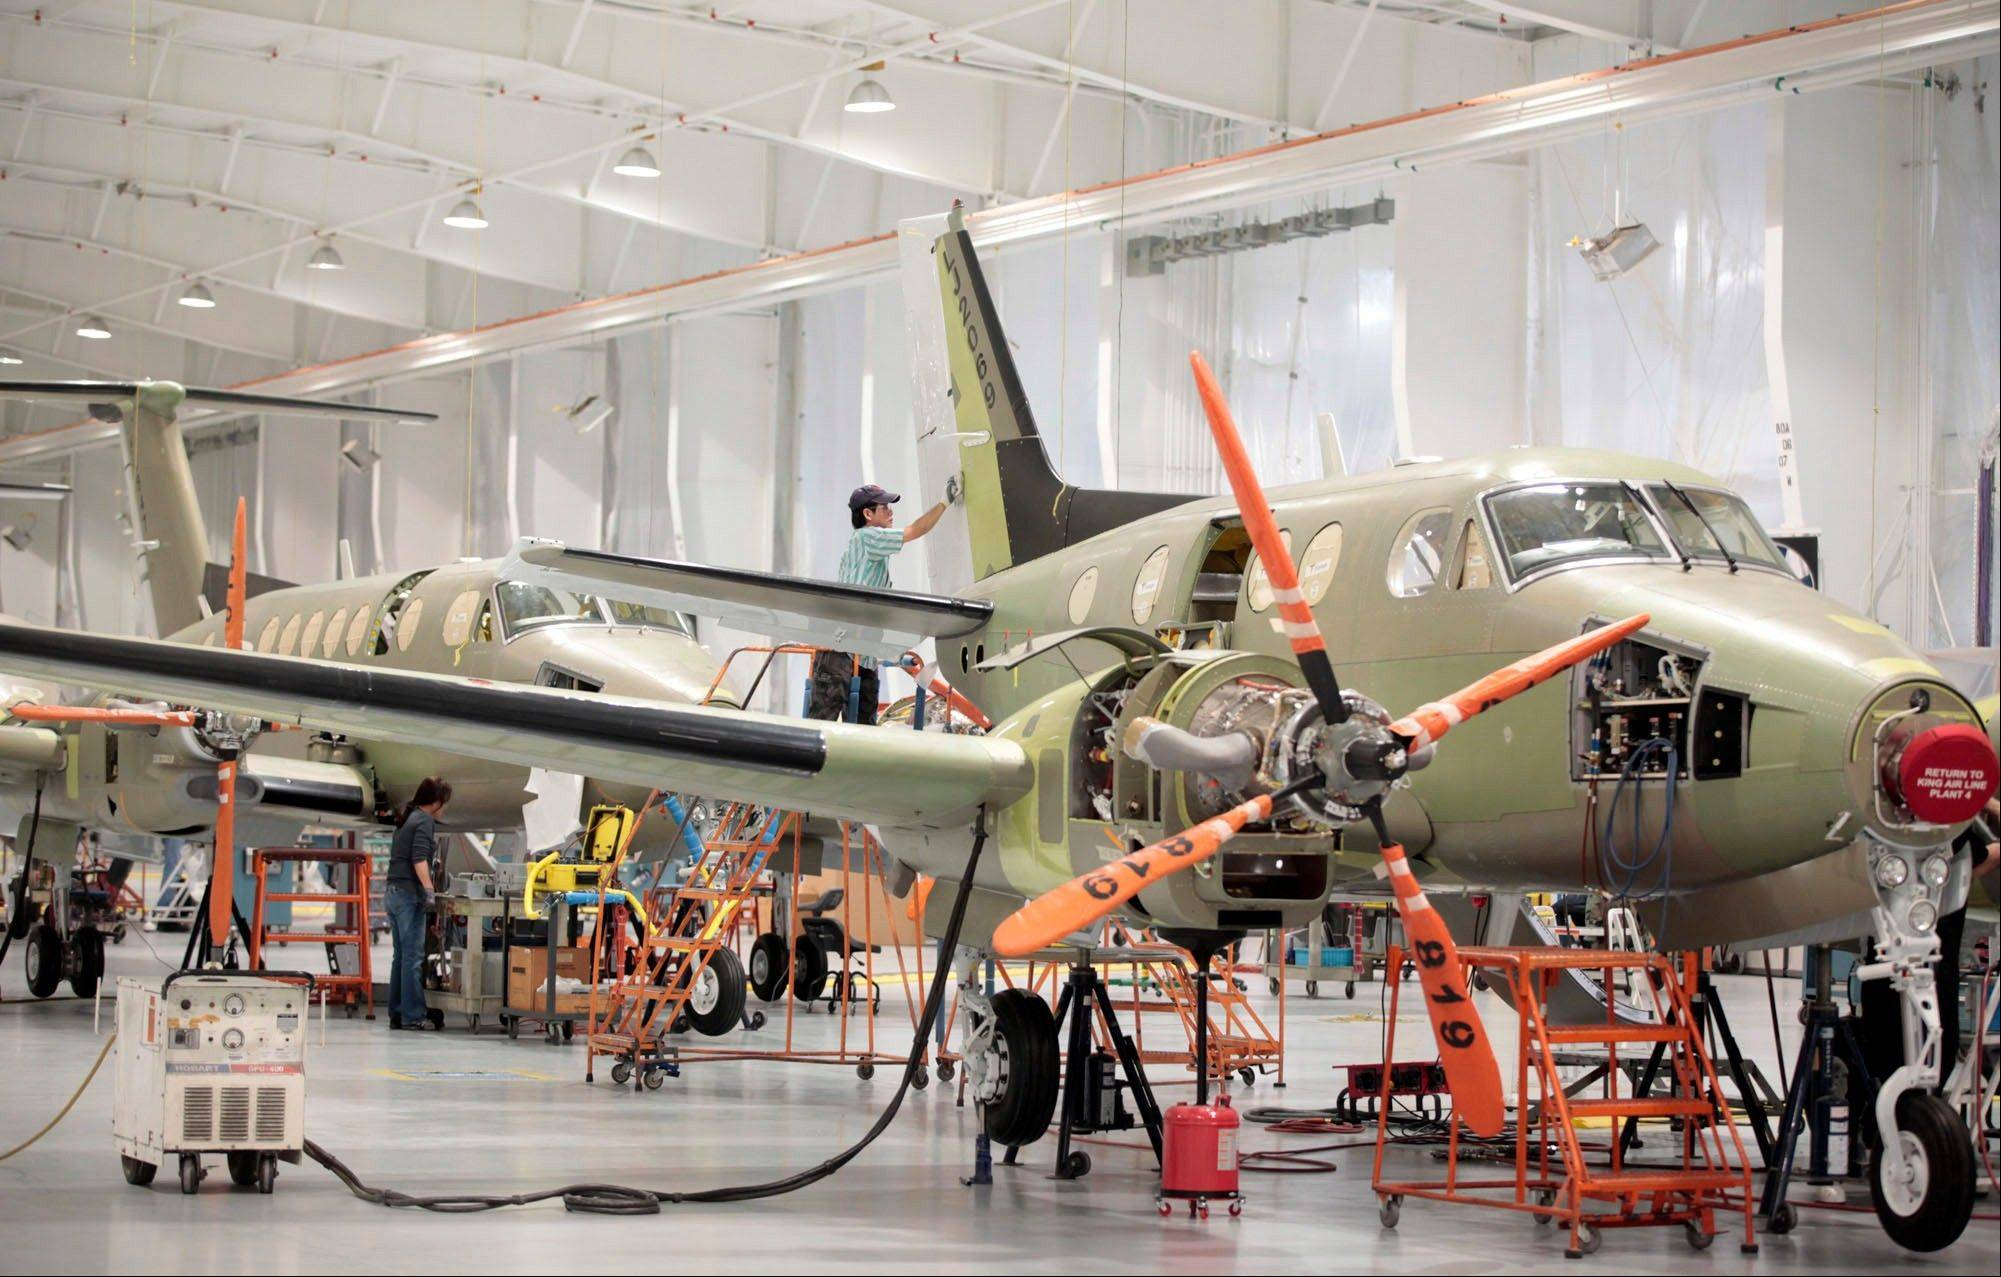 Aircraft move down the assembly line at Beechcraft in Wichita, Kan. Textron Inc., the parent company of Cessna Aircraft, announced Thursday, that it has reached an agreement to buy Beechcraft Corp. for approximately $1.4 billion.